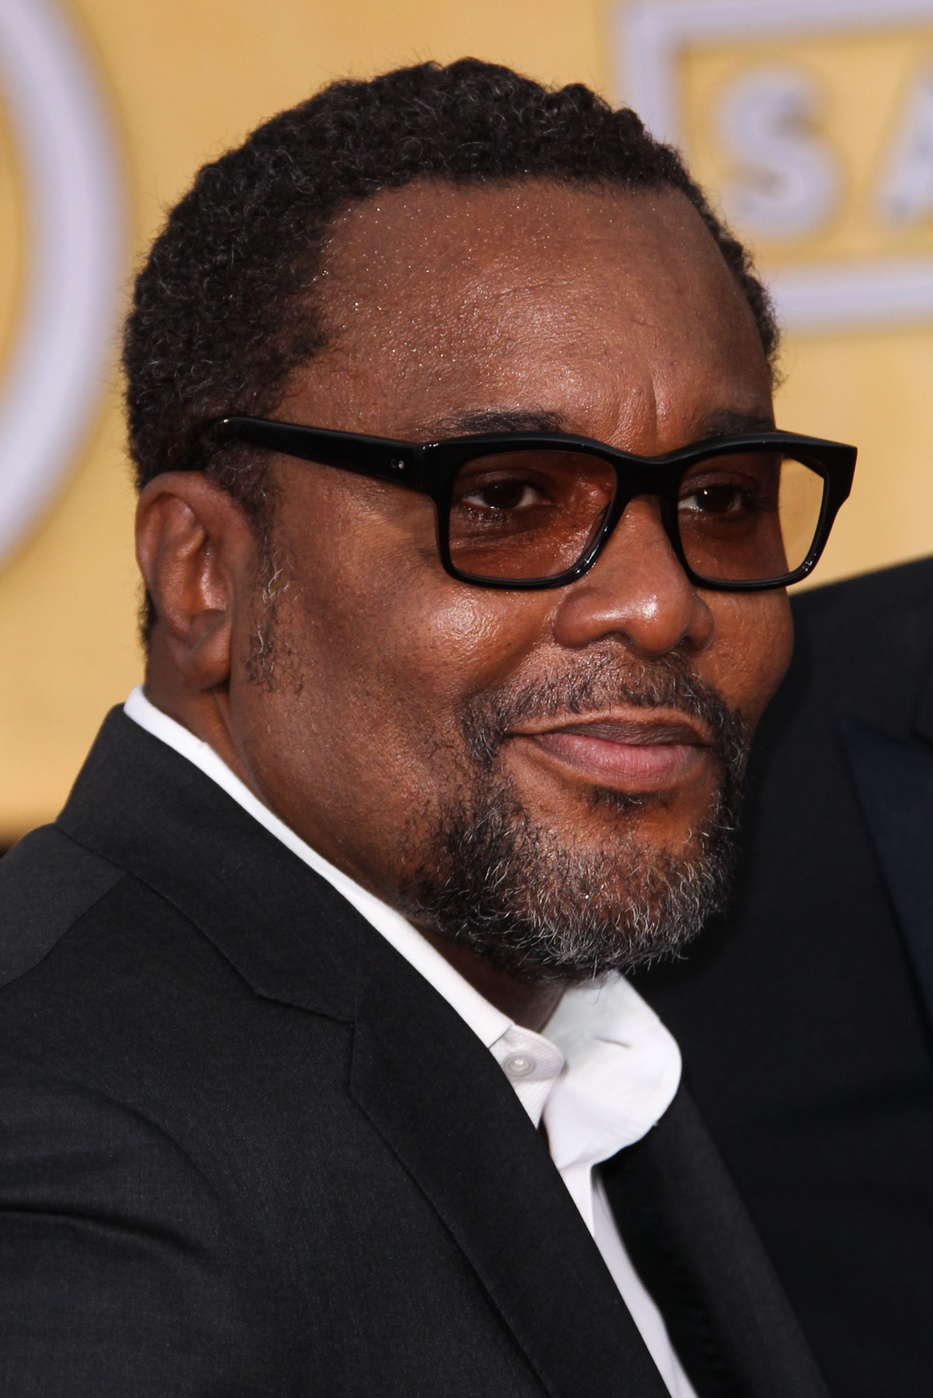 111788, LOS ANGELES, CALIFORNIA - Saturday January 18, 2014. Lee Daniels attends the 20th Annual Screen Actors Guild Awards held at The Shrine Auditorium in Los Angeles. Photograph: © Celebrity Monitor, PacificCoastNews **FEE MUST BE AGREED PRIOR TO USAGE** **E-TABLET/IPAD & MOBILE PHONE APP PUBLISHING REQUIRES ADDITIONAL FEES** LOS ANGELES OFFICE: +1 310 822 0419 LONDON OFFICE: +44 20 8090 4079